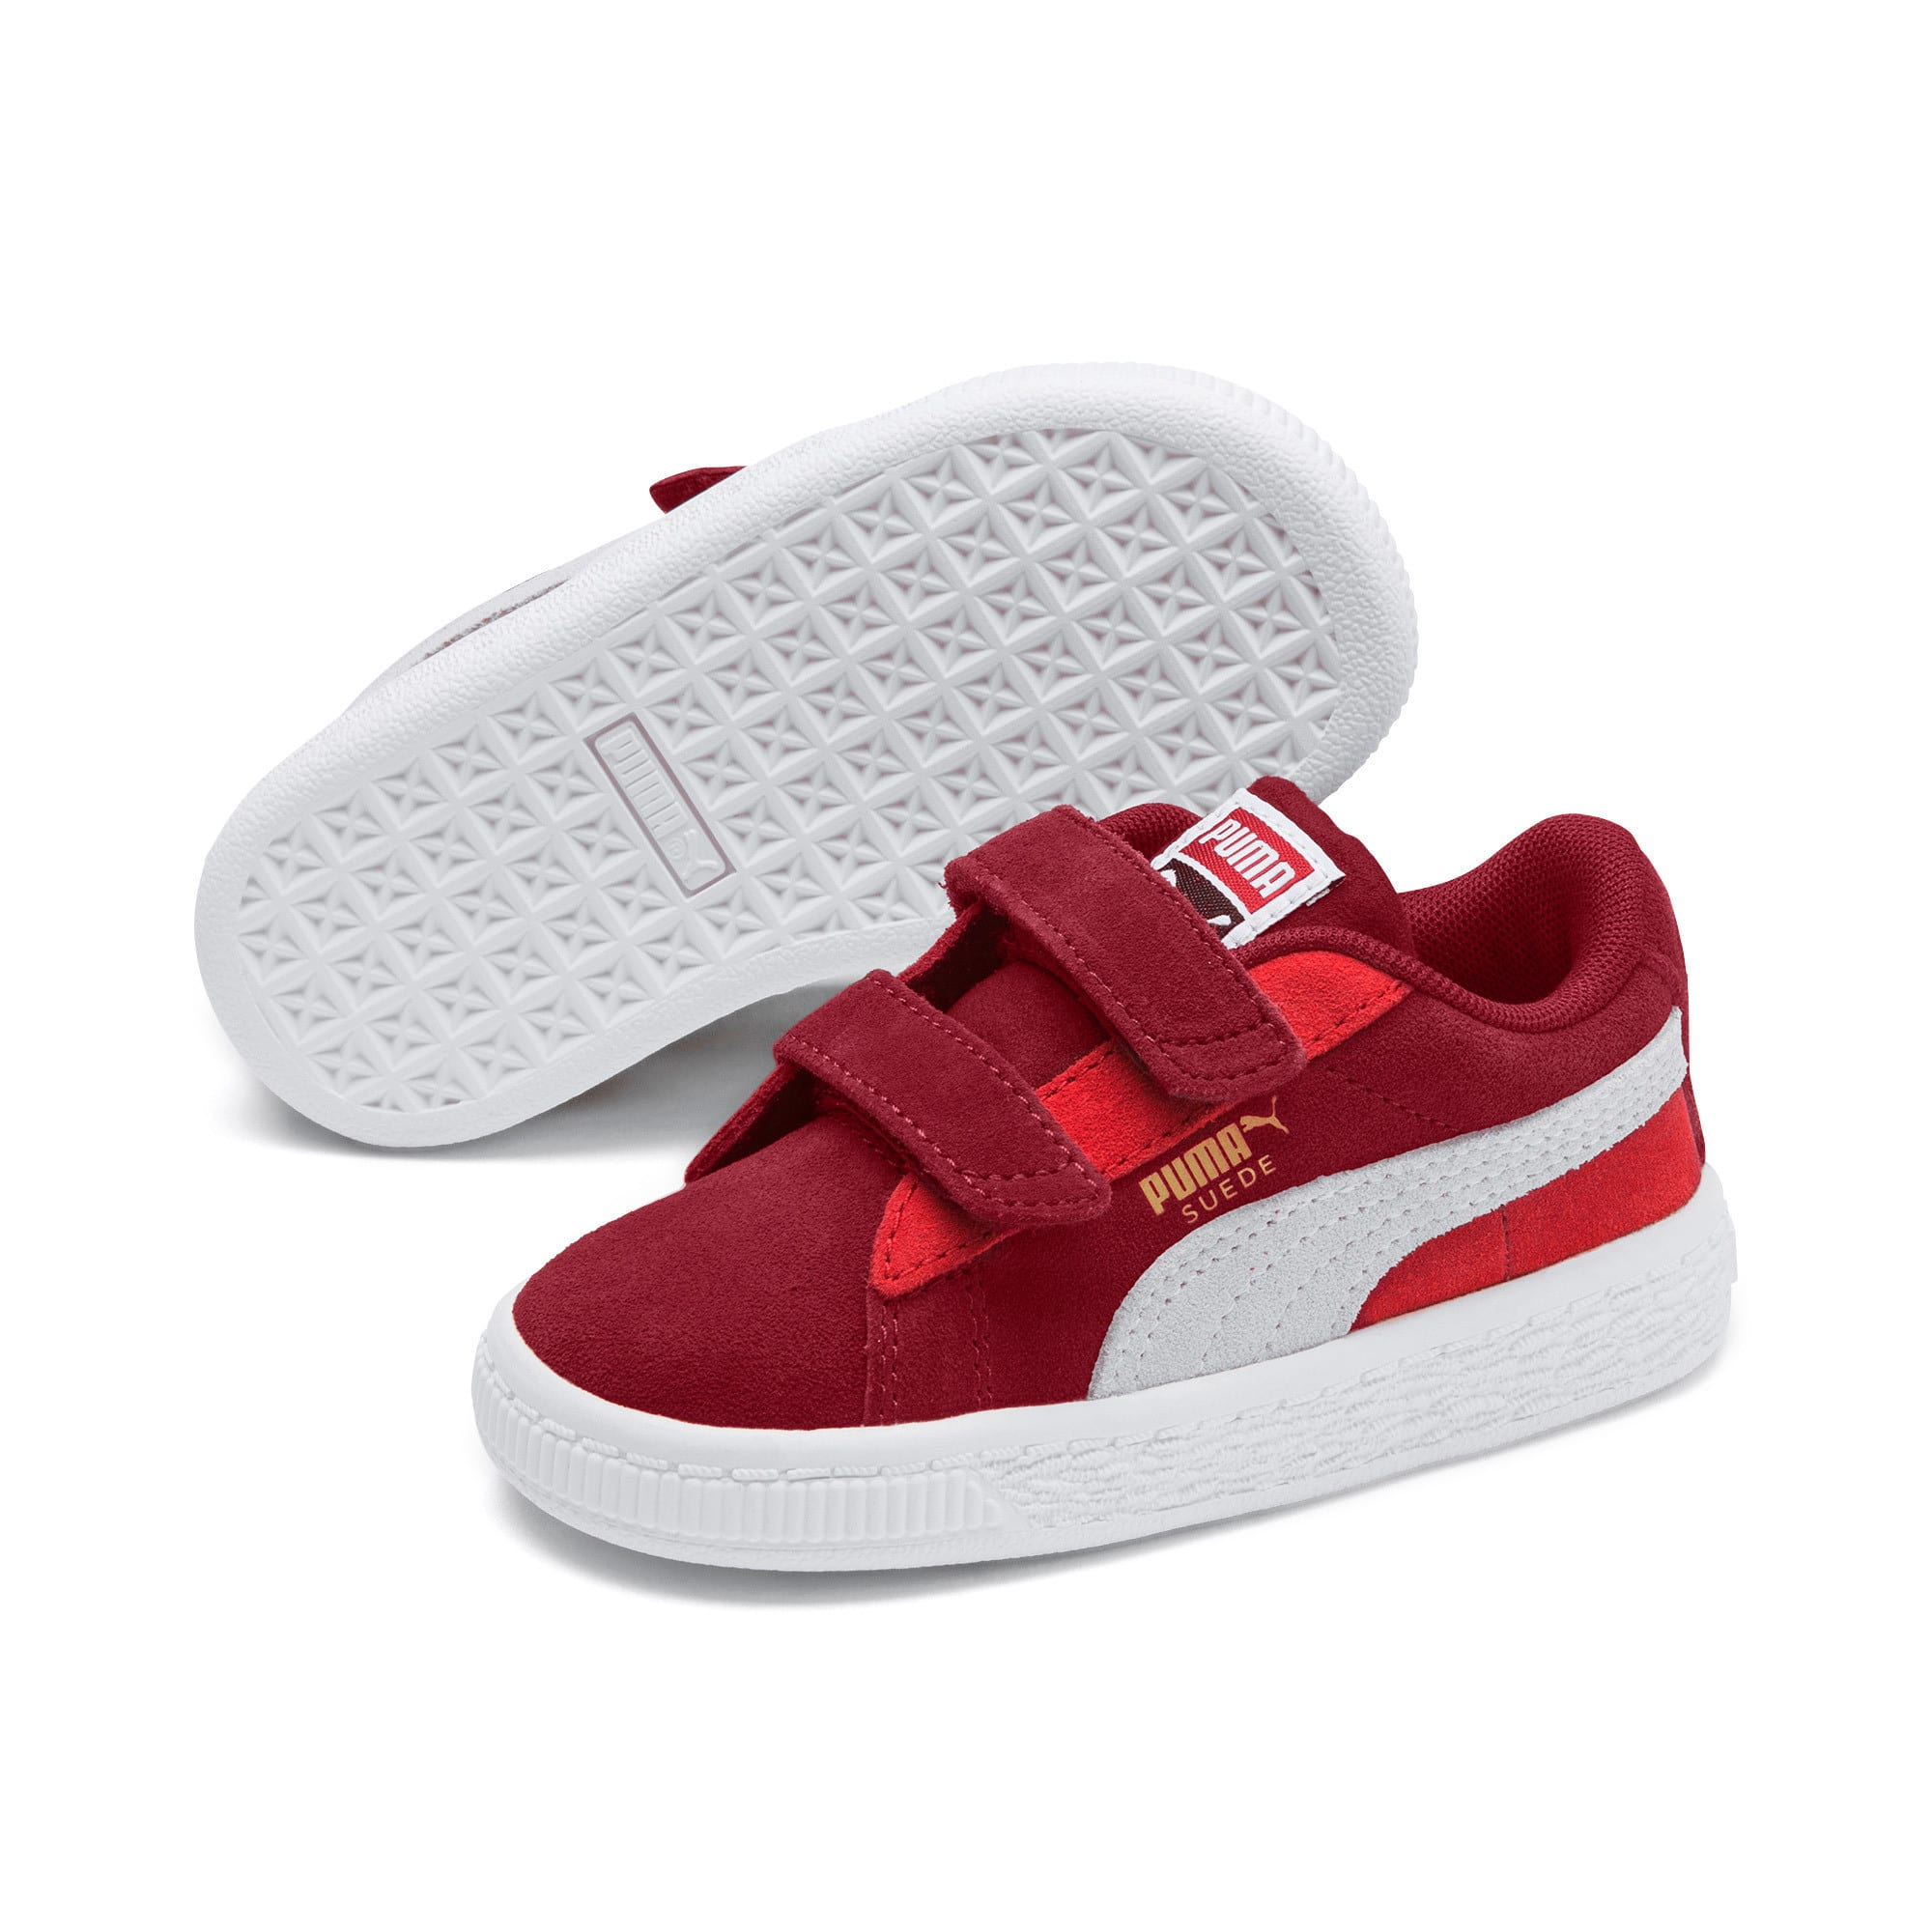 outlet store 7b0a3 5b589 Suede Classic Toddler Shoes